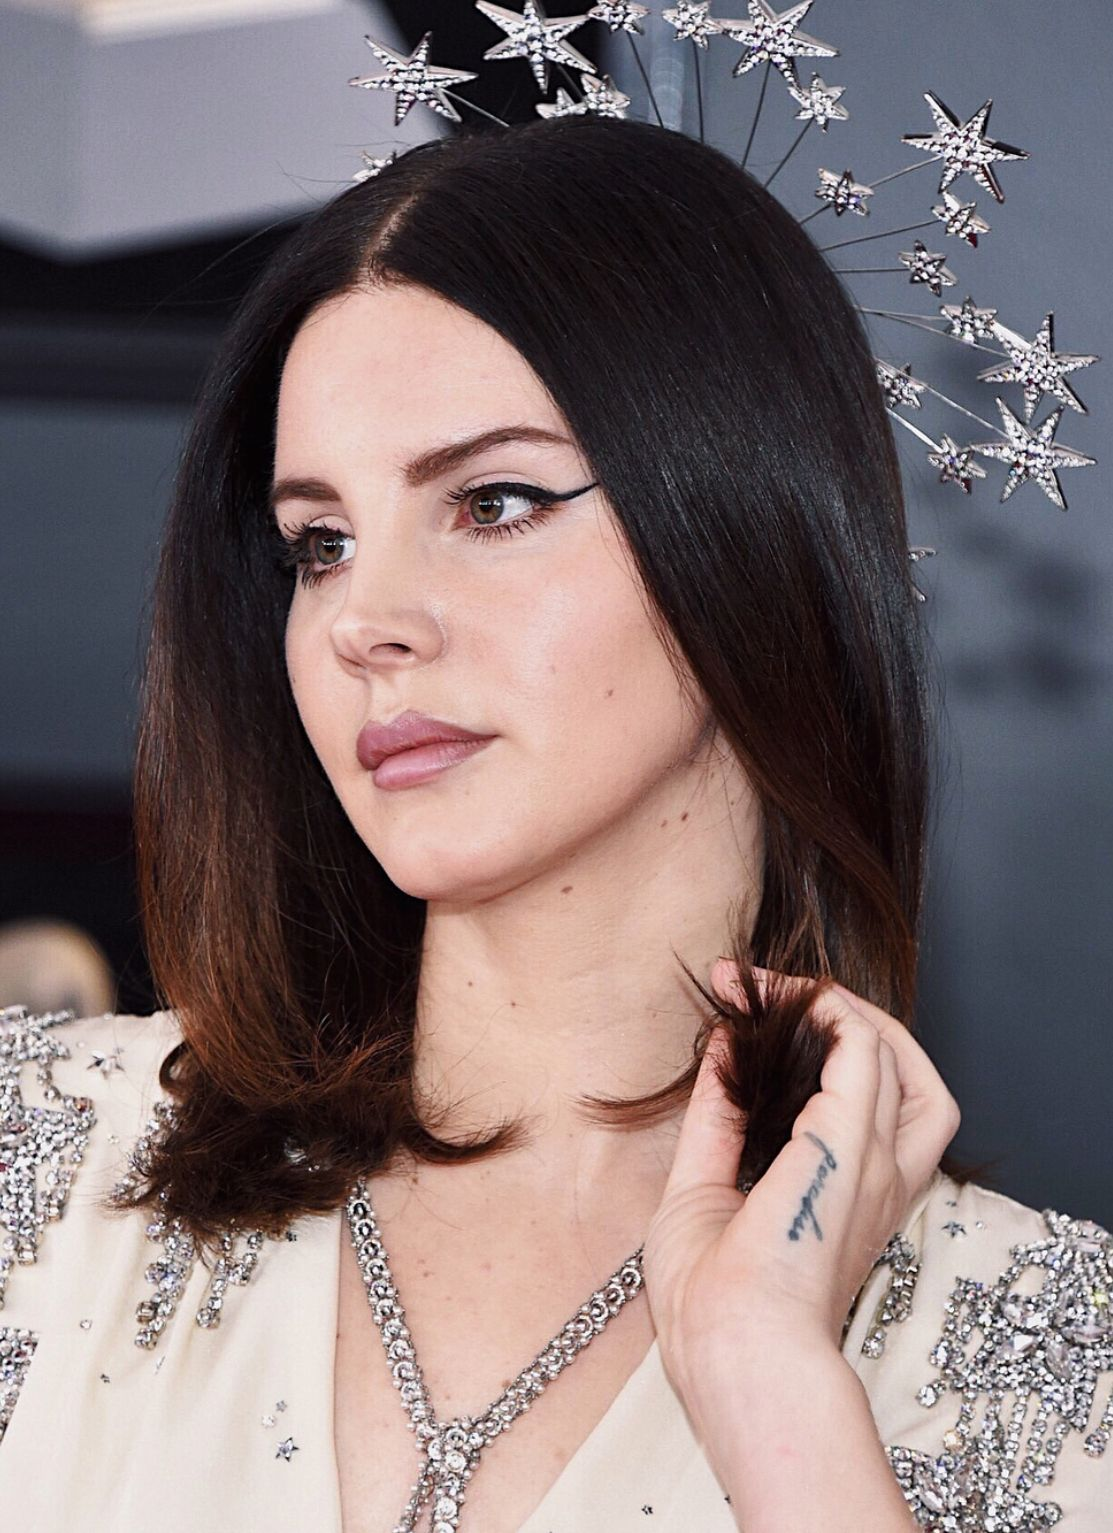 Lana Del Rey Makeup For The Grammys 2018 In 2019 Lana